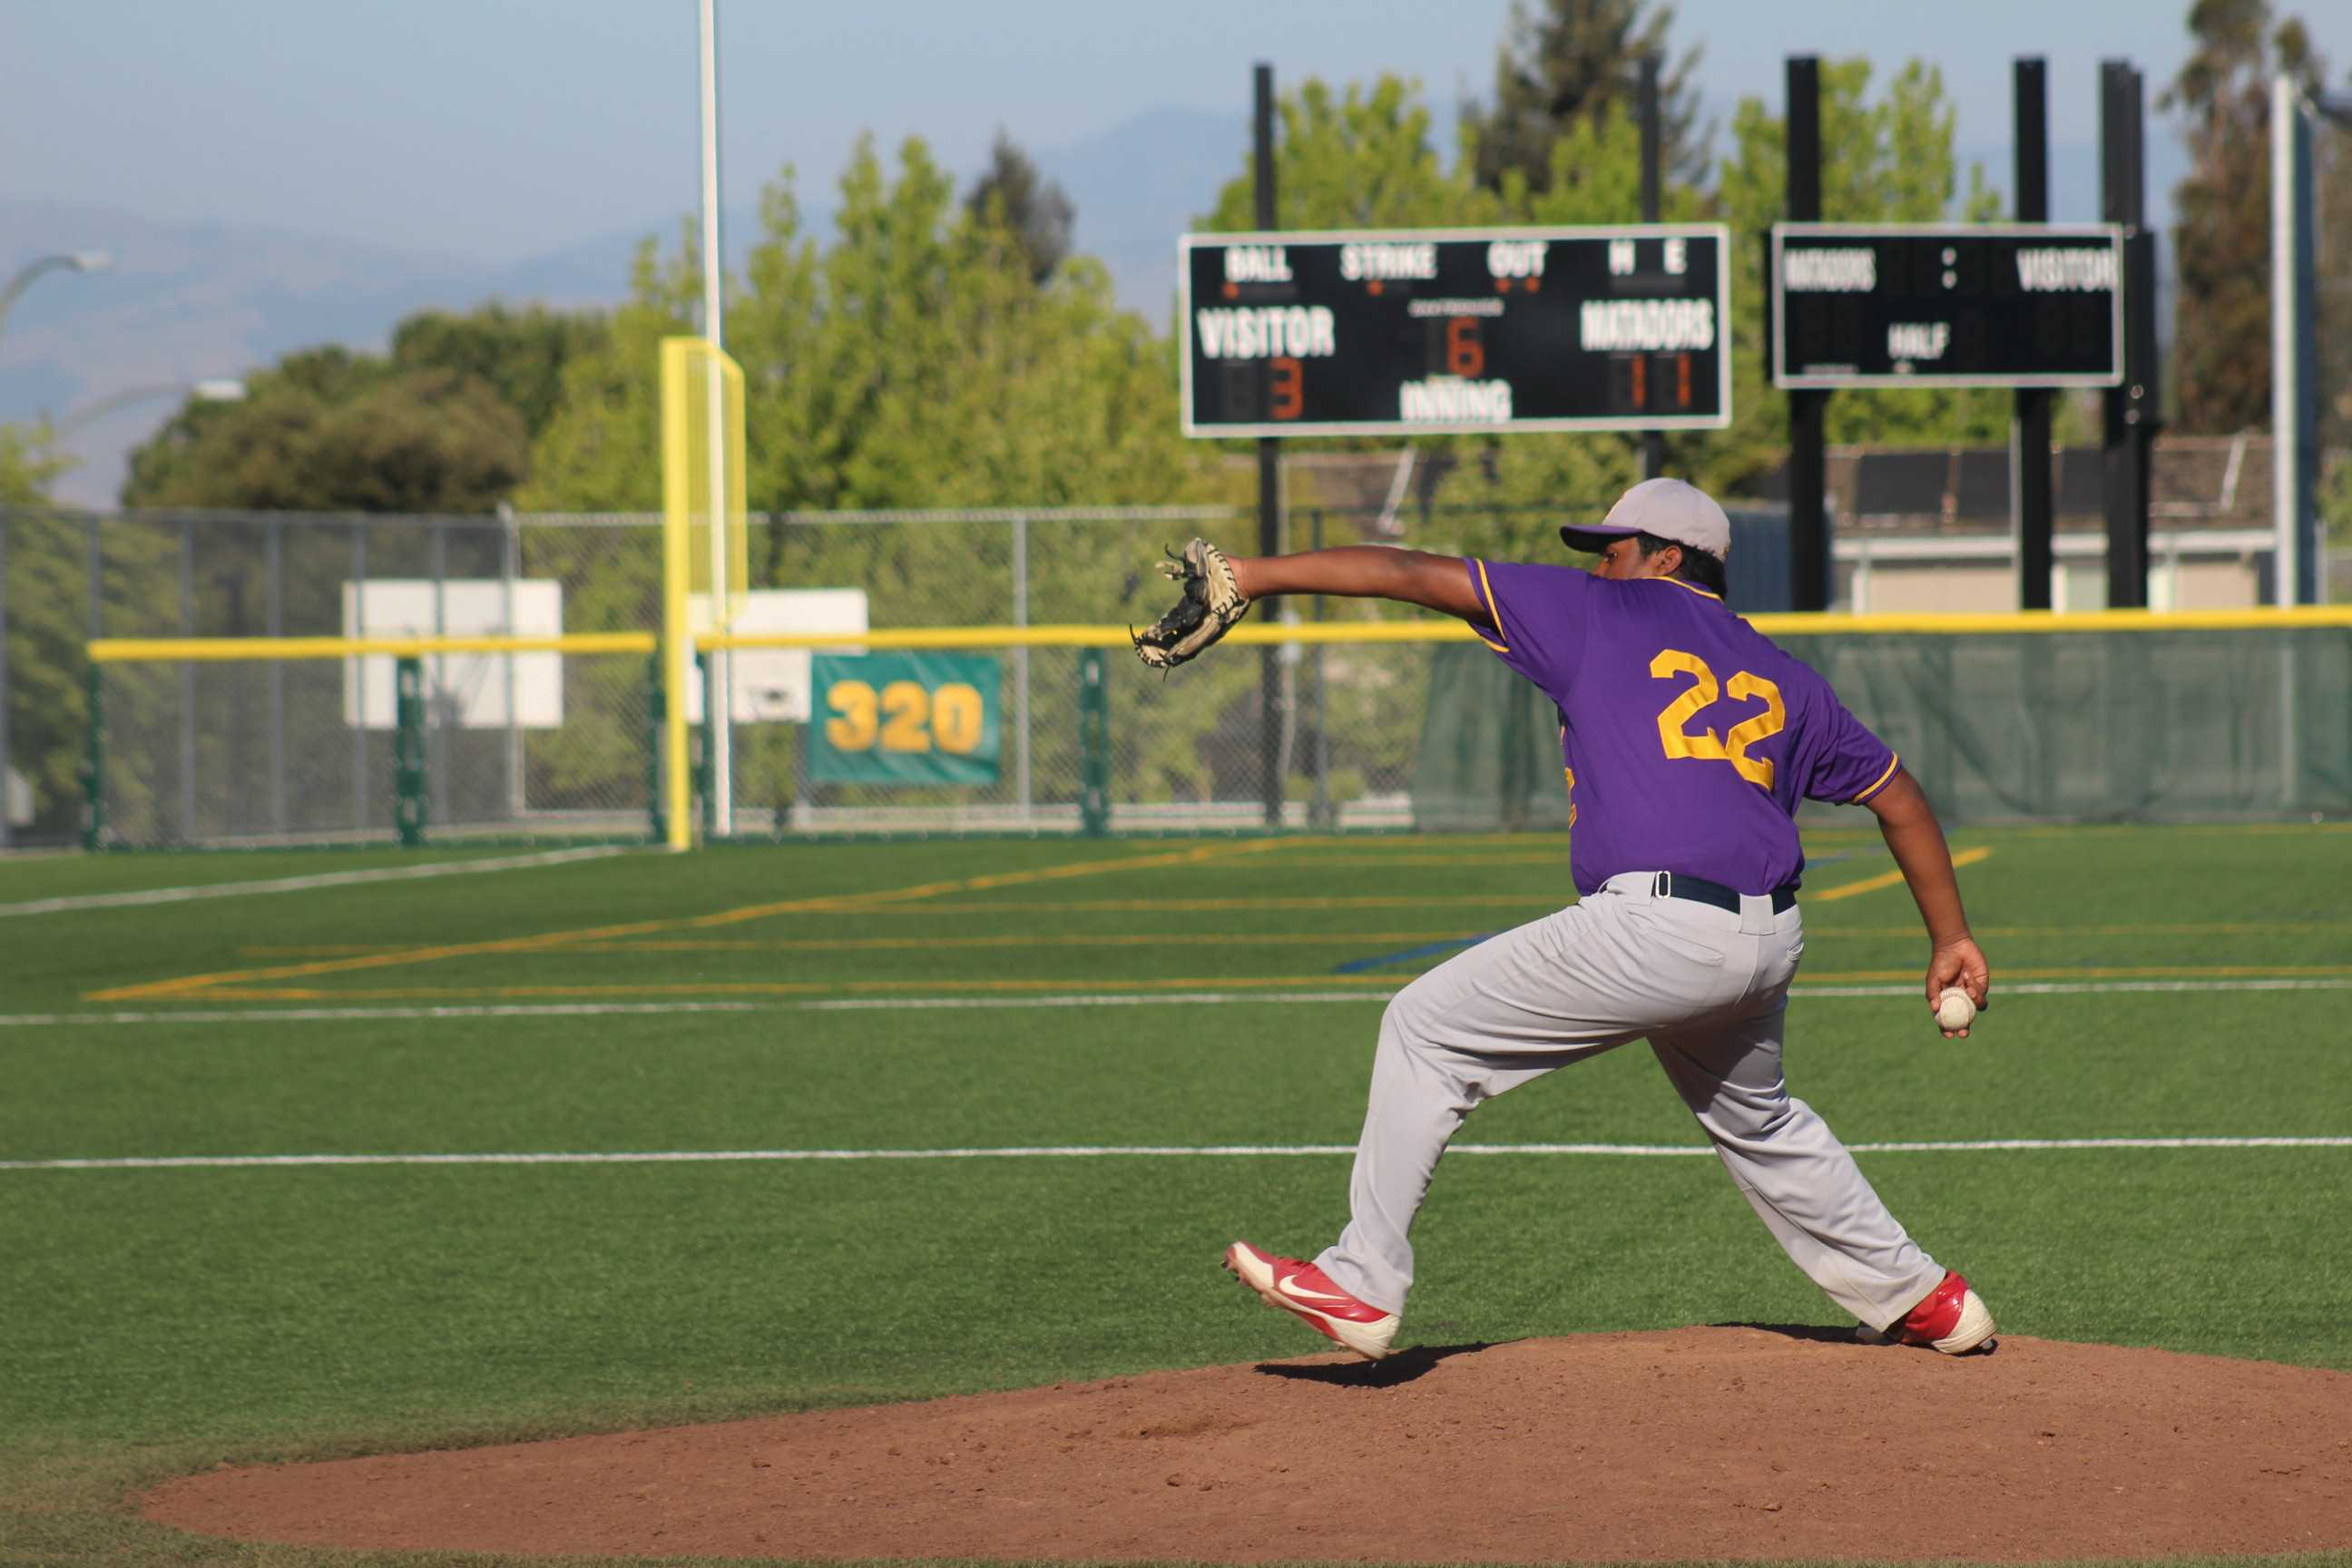 Junior Surya Kumaraguru came into for relief for senior Sheldon McClelland at the mound. After the first inning, the pitching for the Matadors was nearly unstoppable. Photo by Pranav Iyer.